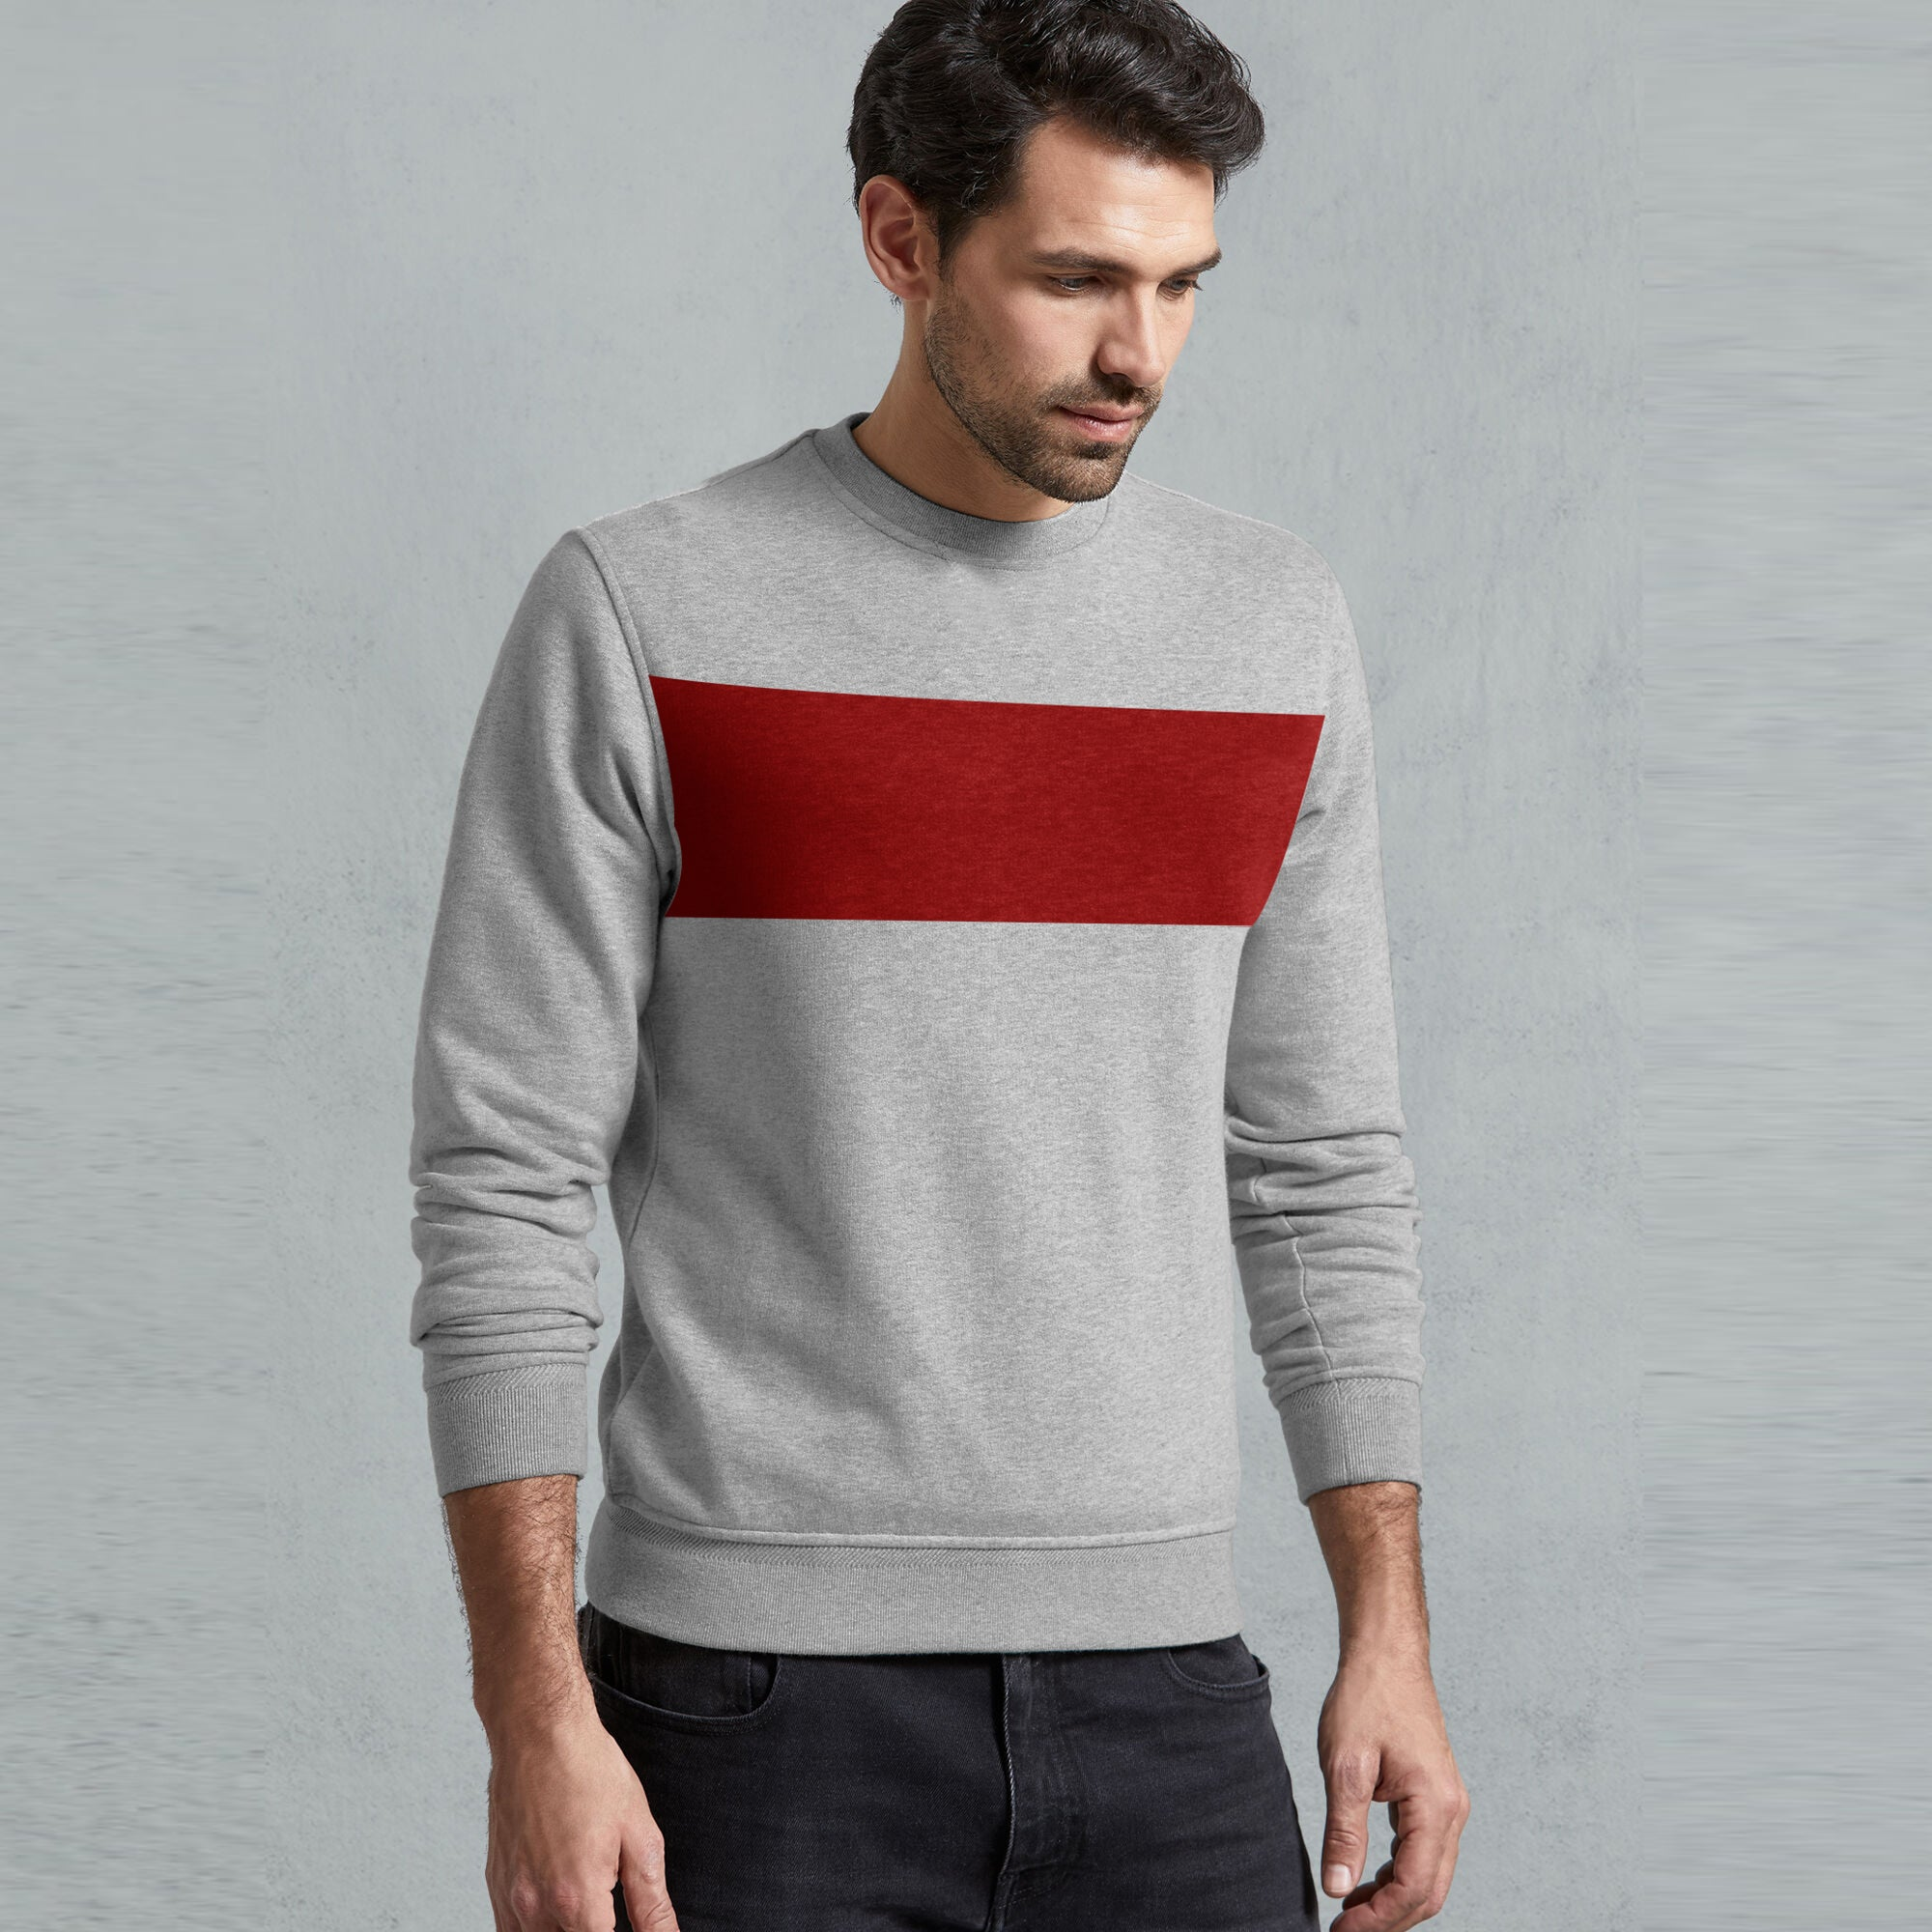 Next Fleece Crew Neck Sweatshirt For Men-Grey Melange with Red Panel-SP1060